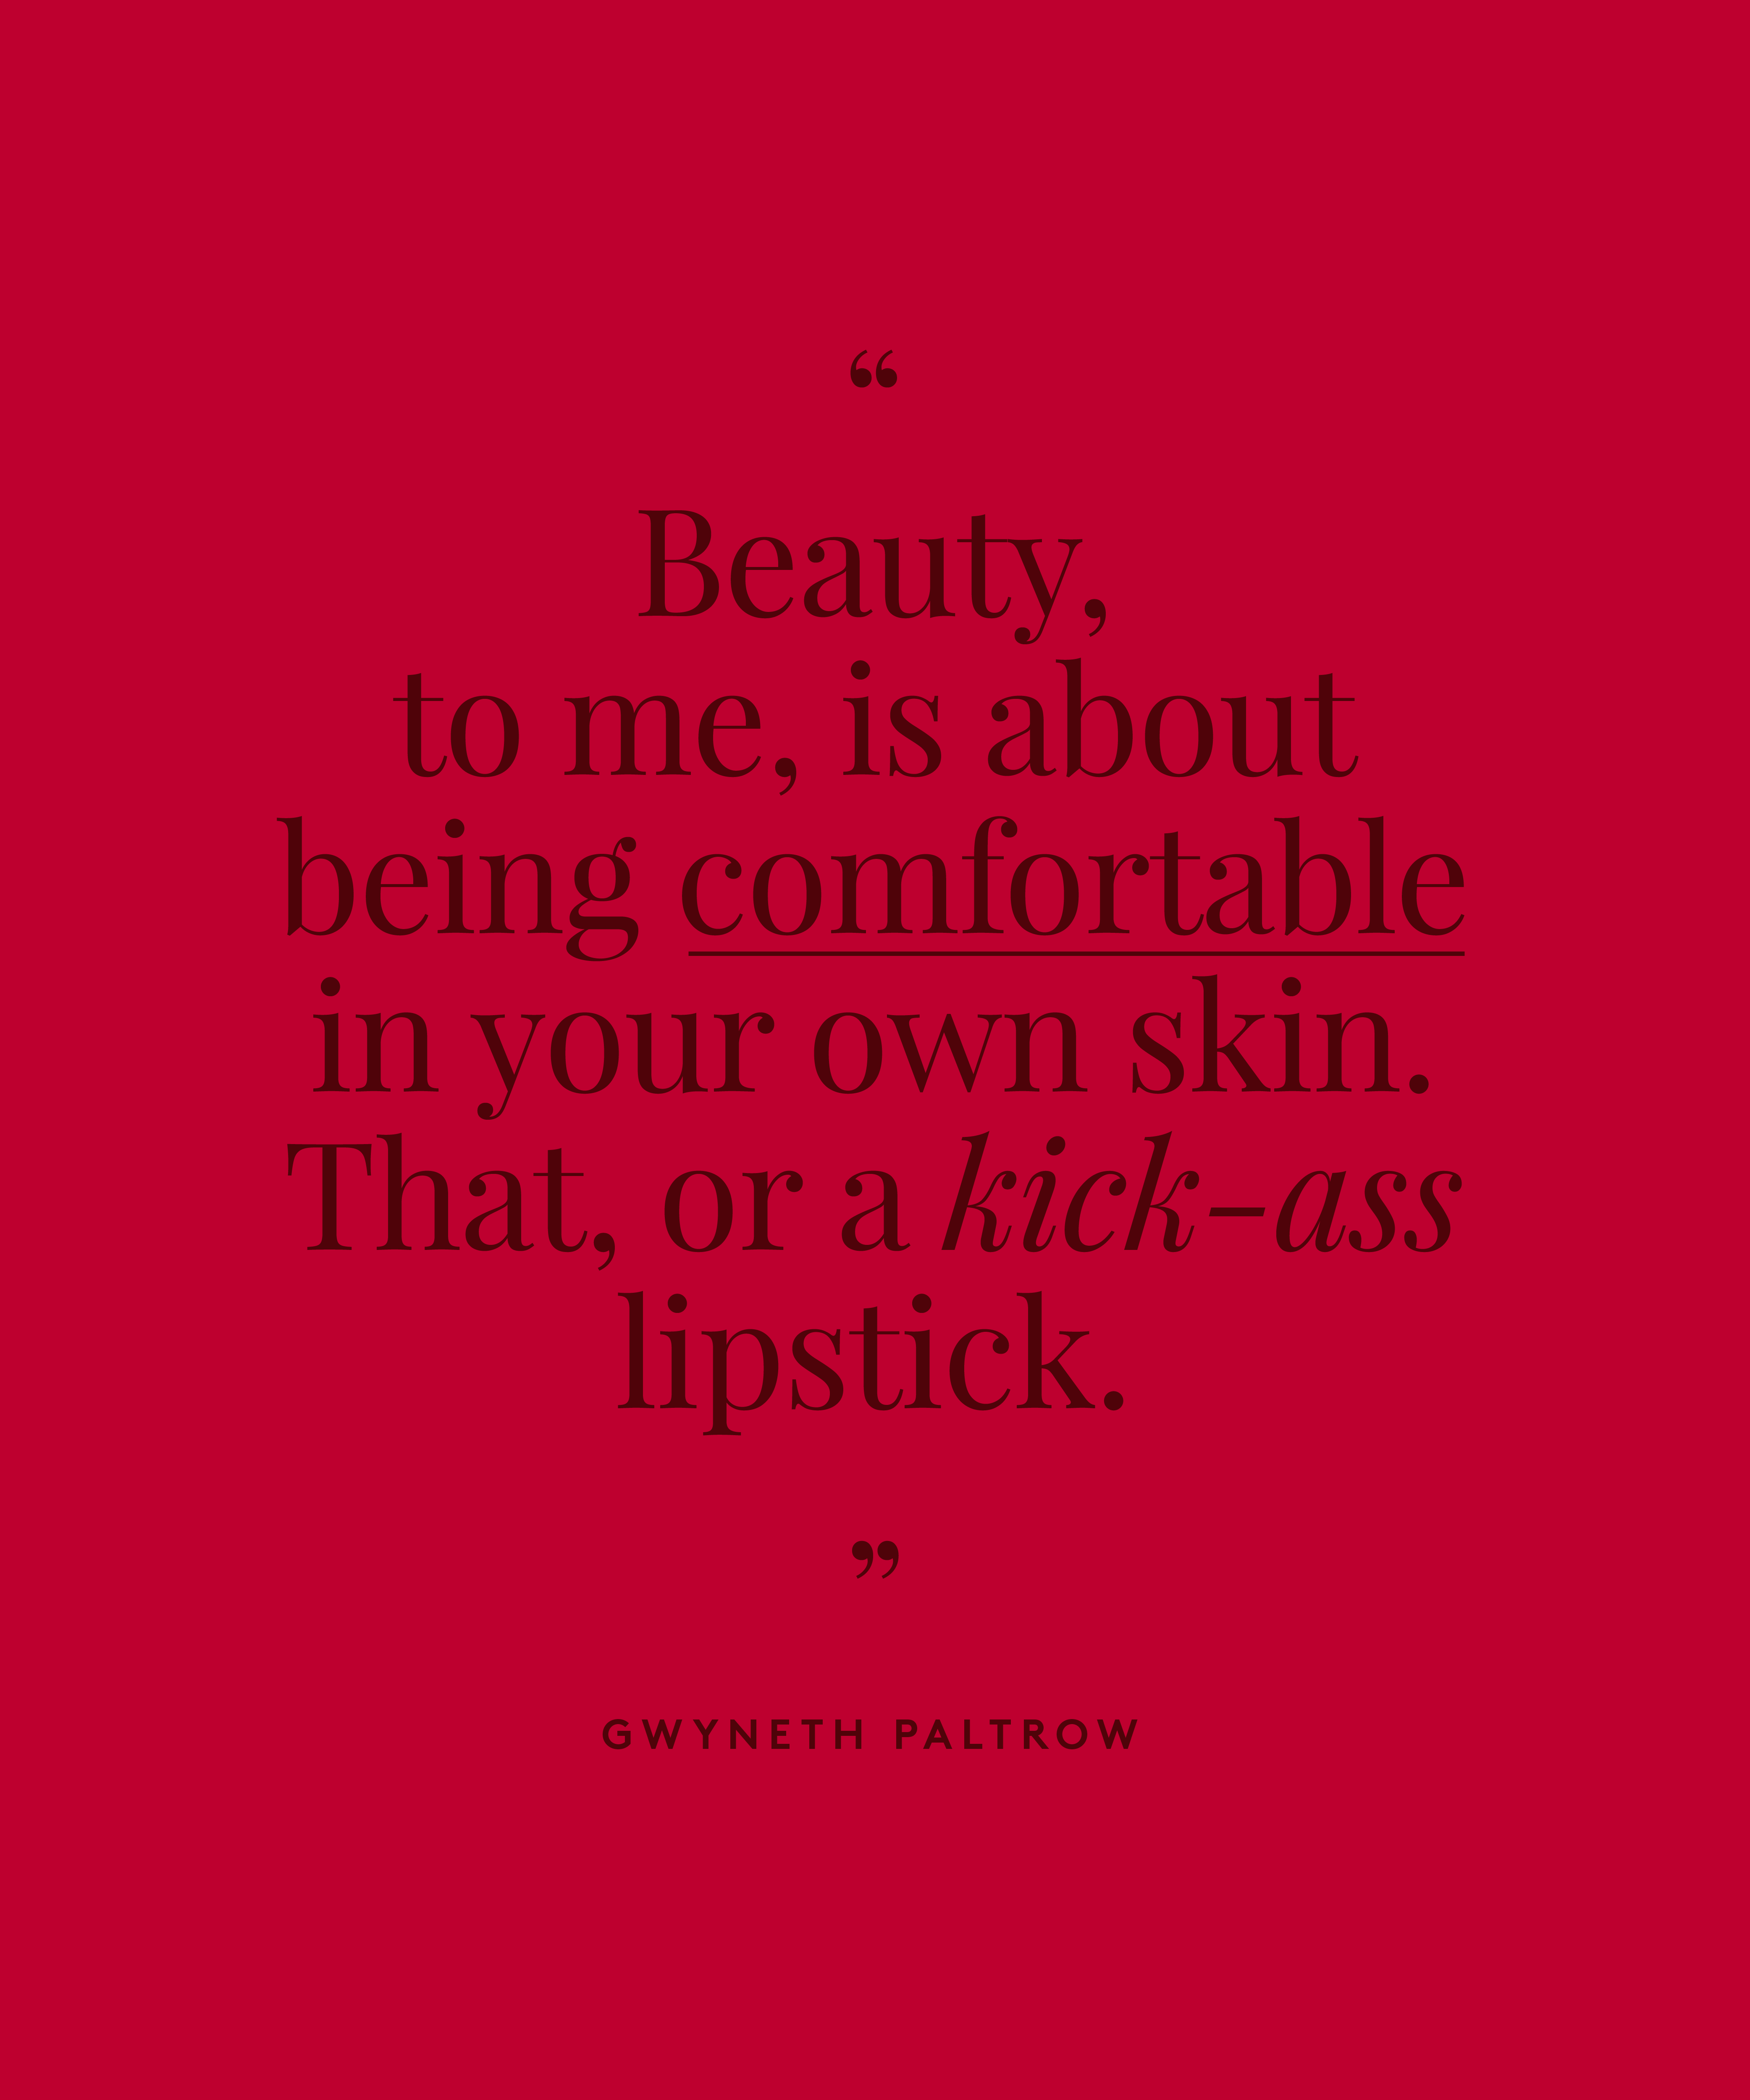 Christmas Is Almost Here Quotes.Best Lipstick Quotes For Your Next Instagram Caption